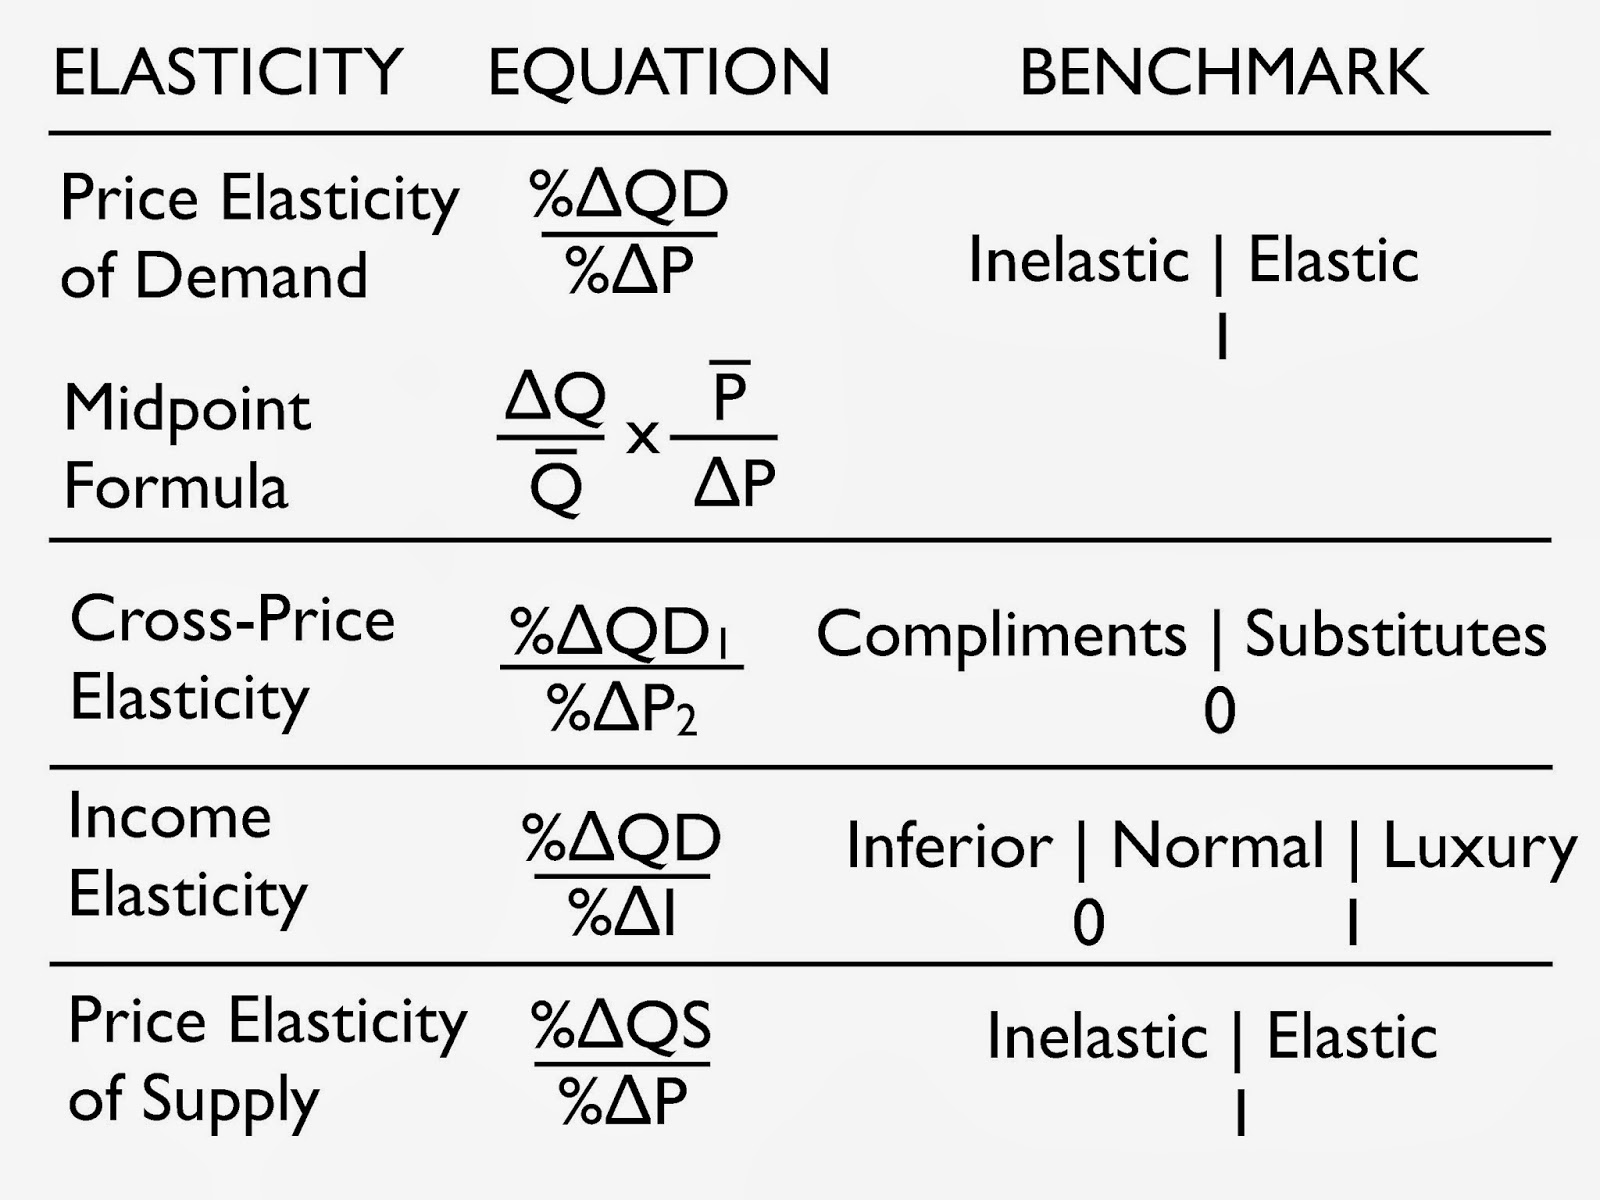 Alfaisal Economics 101 Elasticity Equations